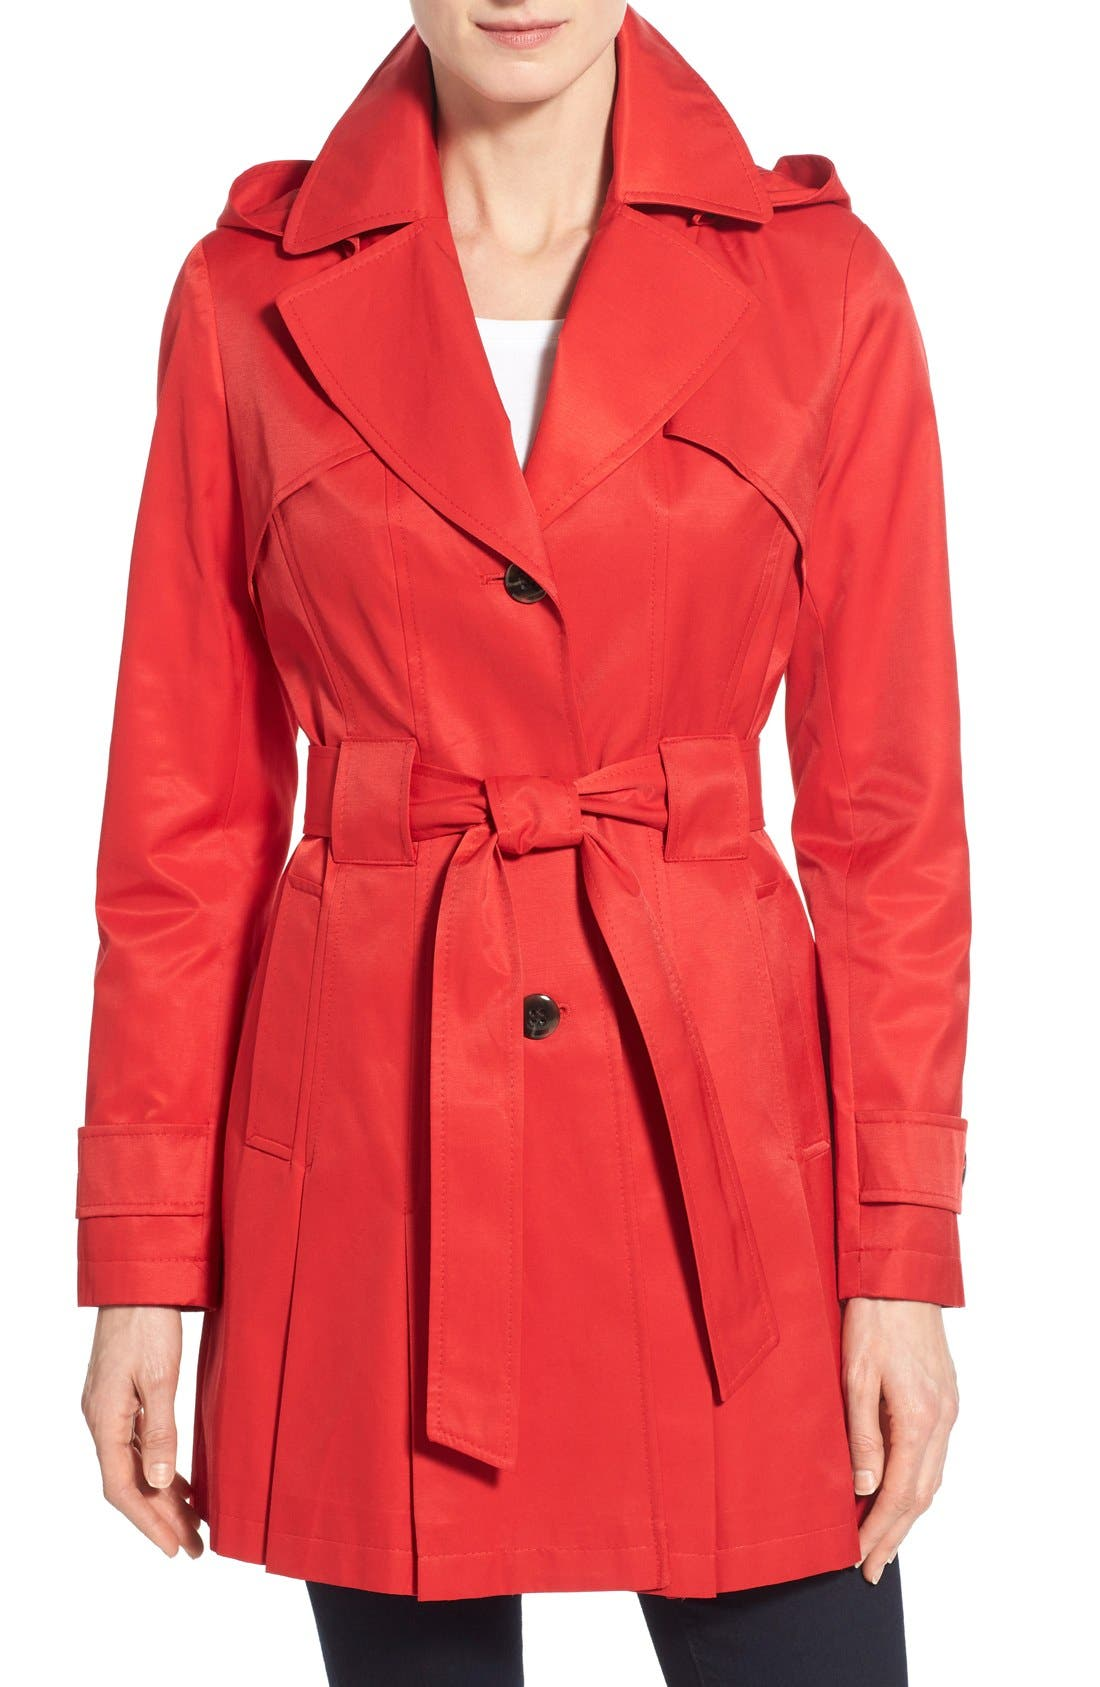 Via Spiga 'Scarpa' Hooded Single Breasted Trench Coat (Regular & Petite)